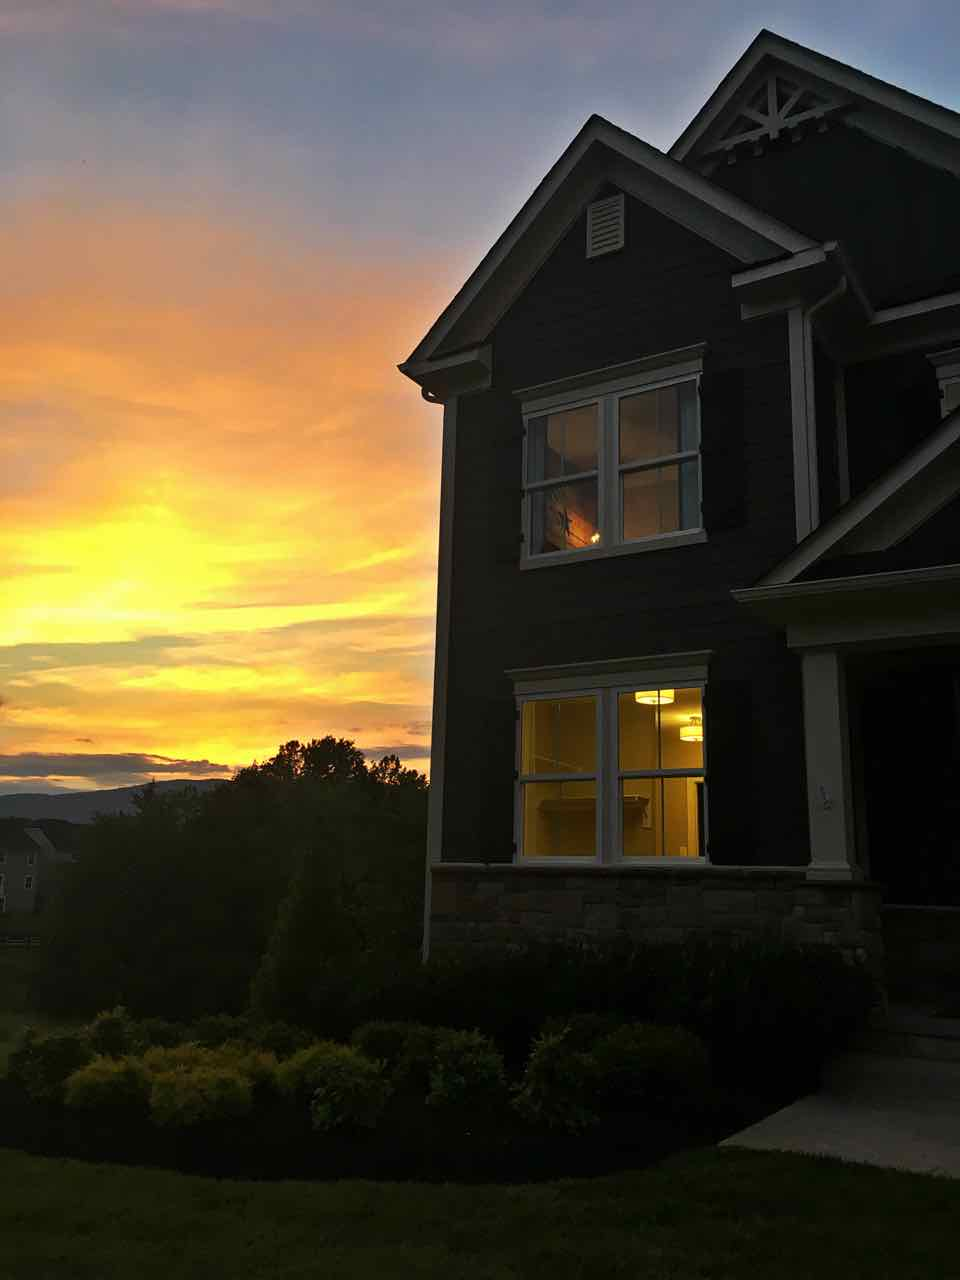 Amazing sunset in Westlake Crozet subdivision